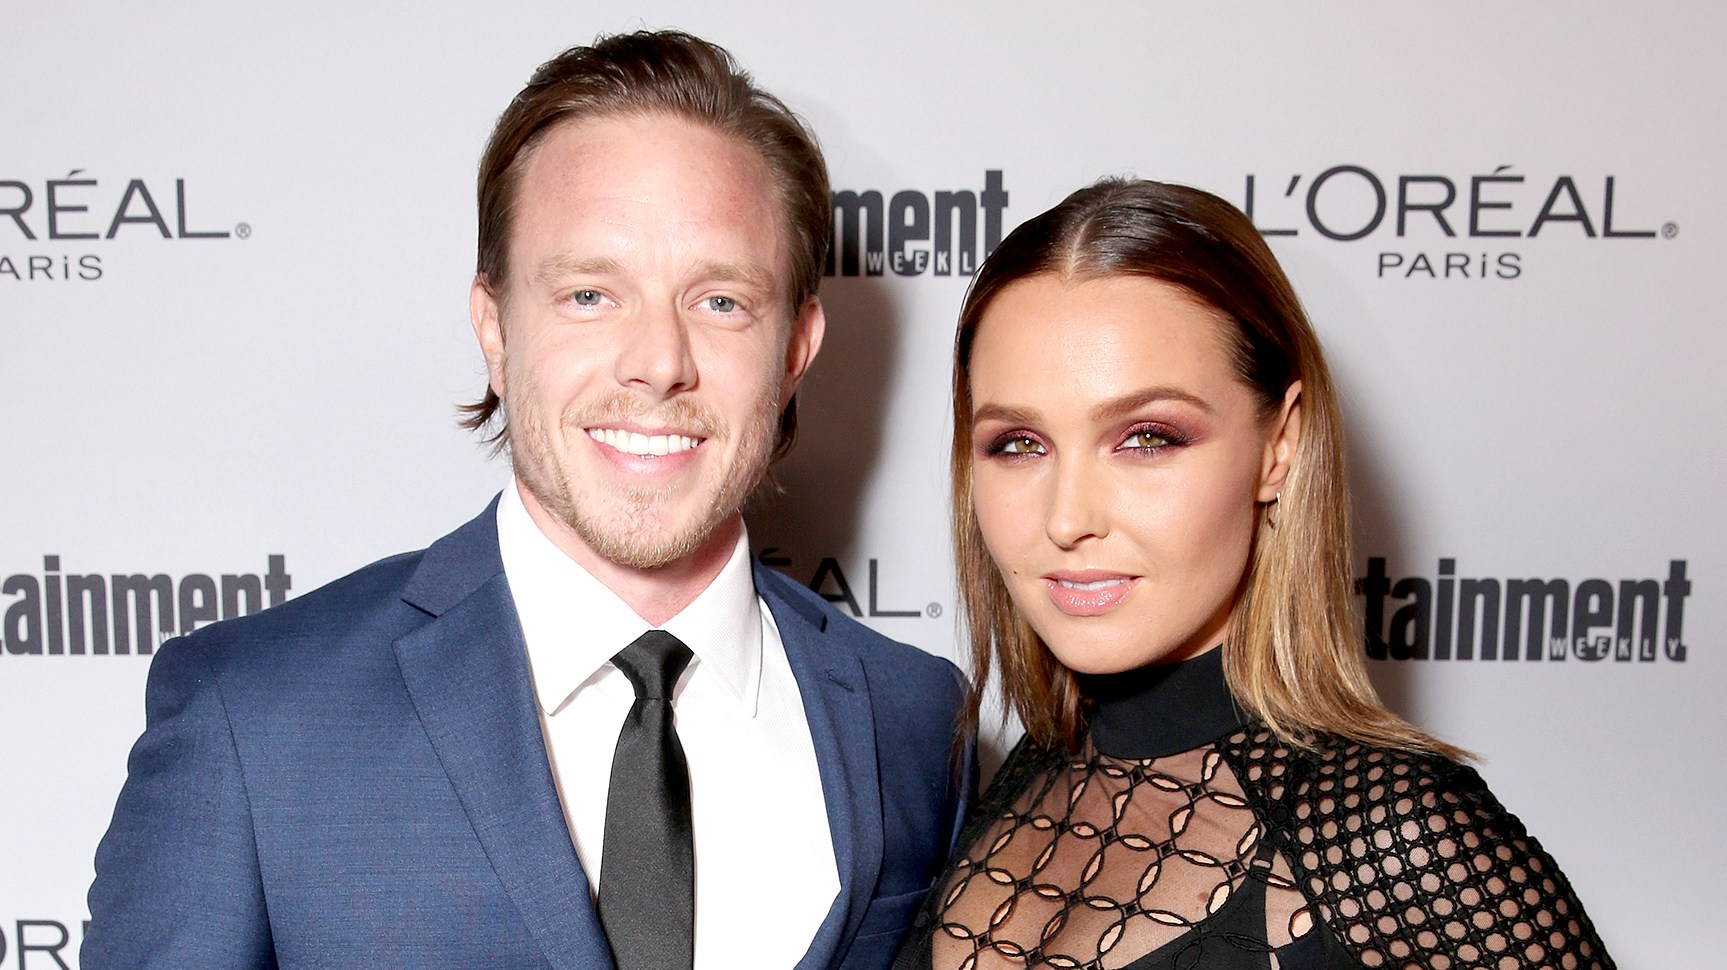 Matt Alan and Camilla Luddington attend the 2016 Entertainment Weekly Pre-Emmy party at Nightingale Plaza on September 16, 2016 in Los Angeles, California.